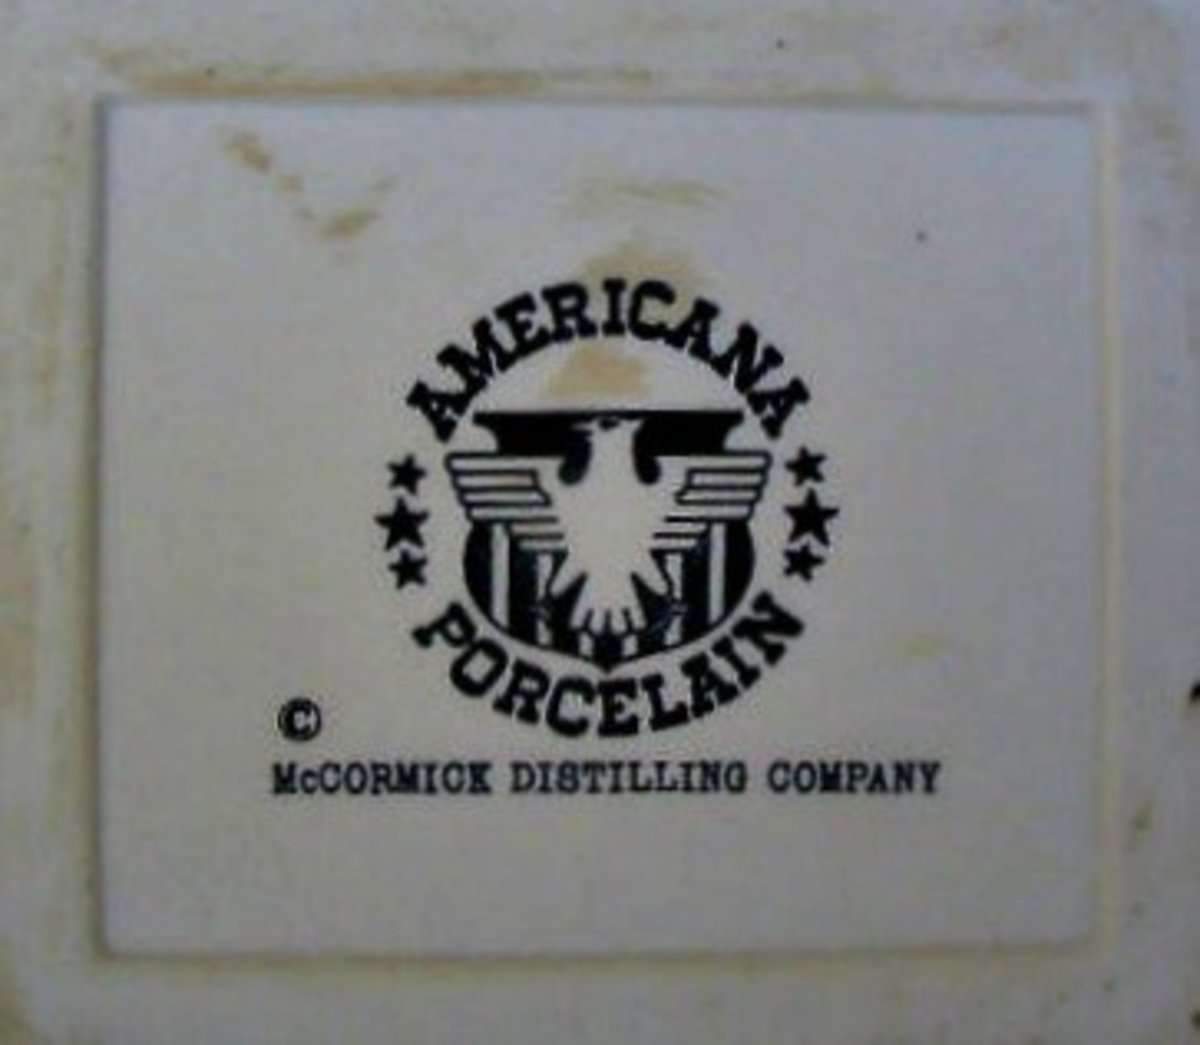 The American Porcelain Company made all the beautiful decanters for the McCormick Distilling Company, they had a wonderful workforce in Japan that did exquisite work.